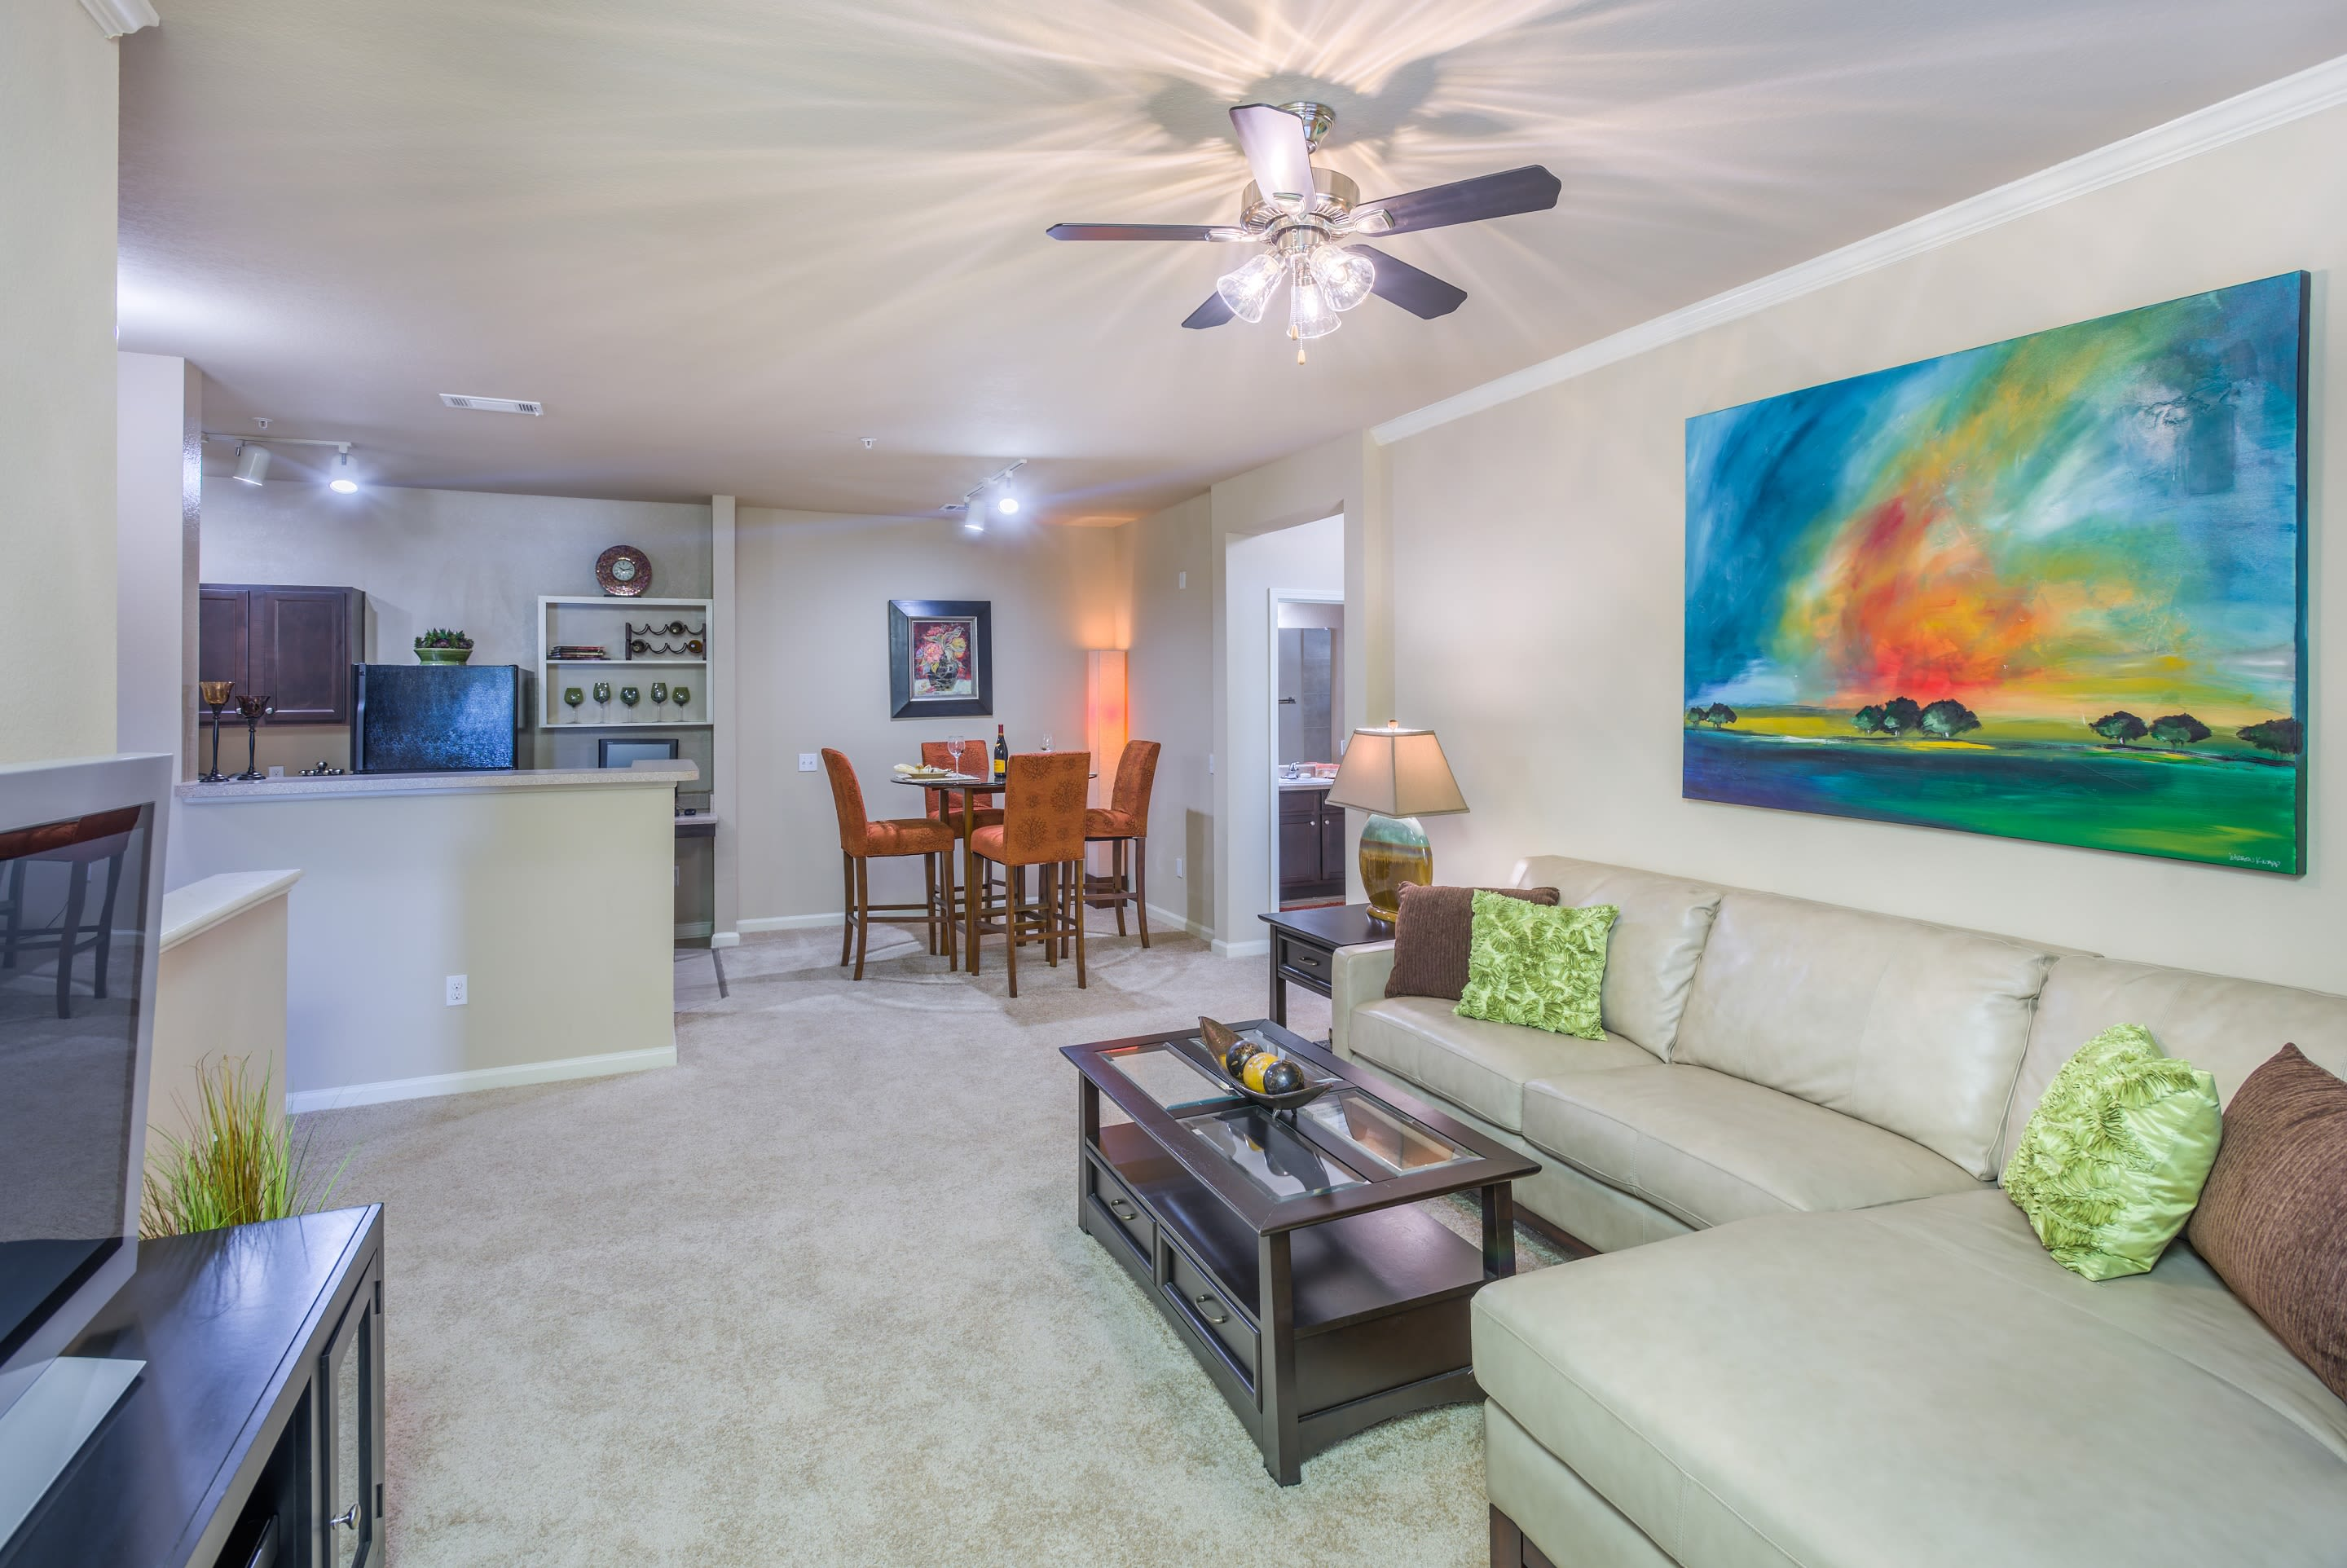 Apartment interior at The Vive in Kannapolis, North Carolina